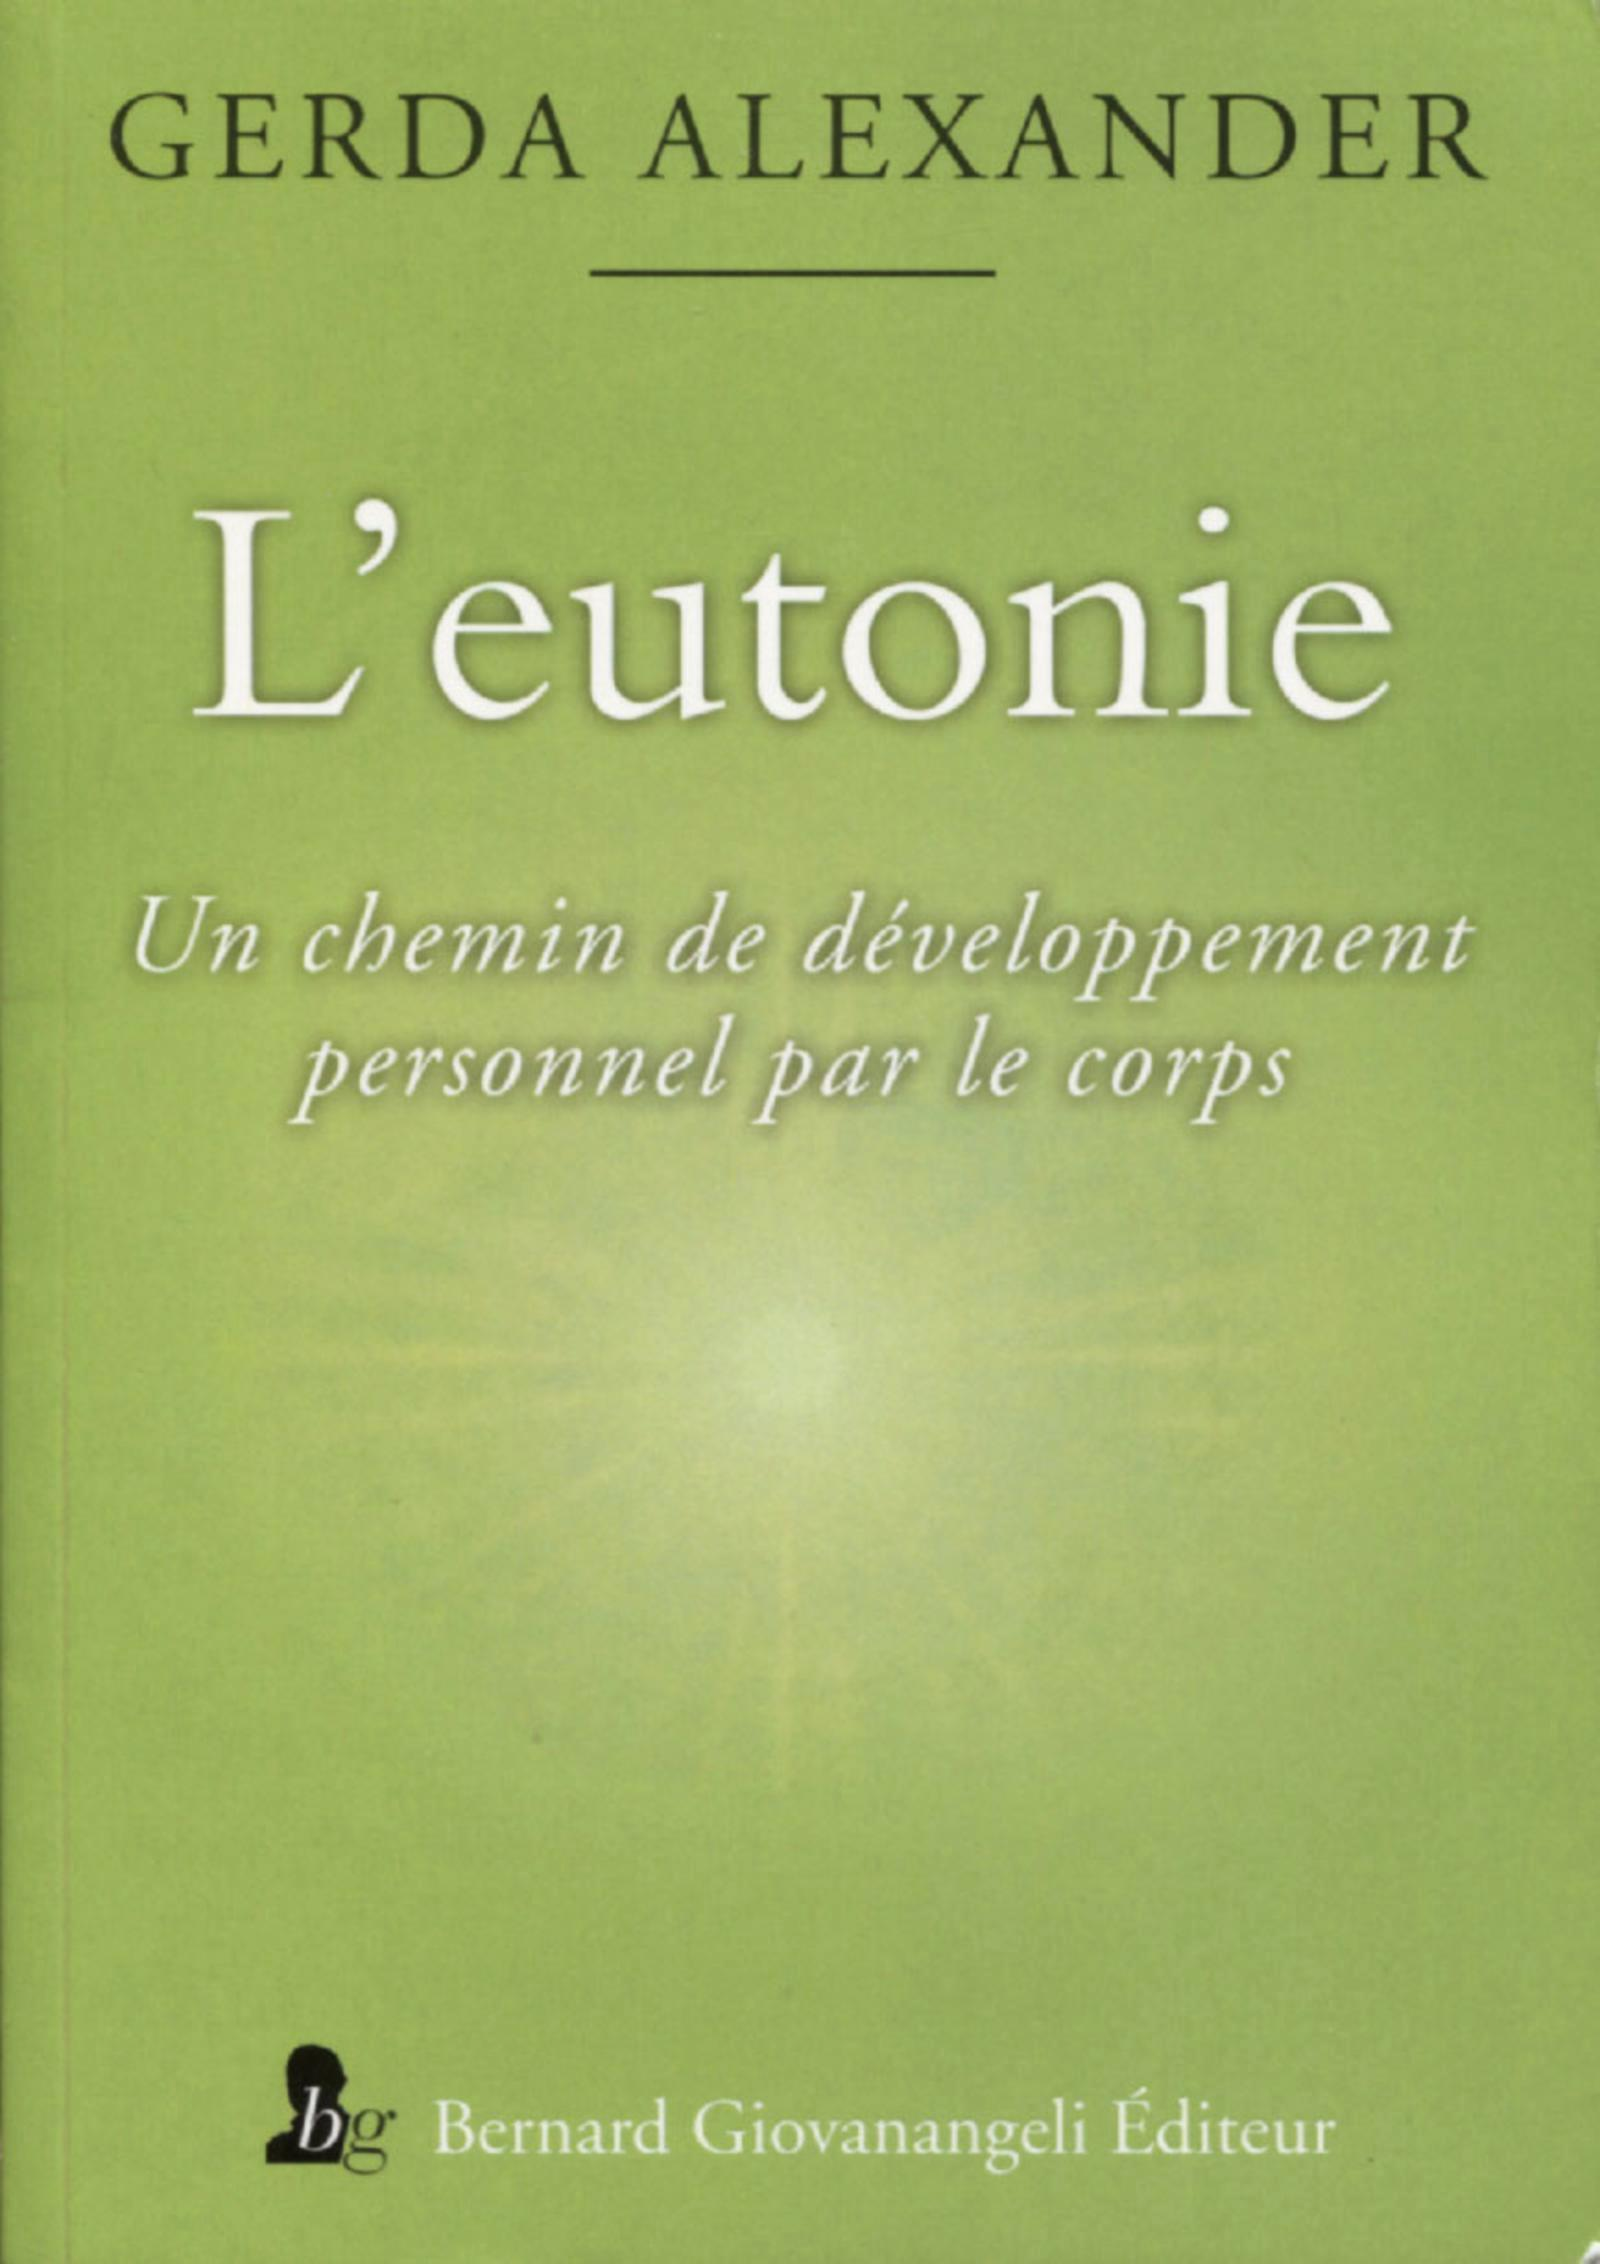 L'EUTONIE - UN CHEMIN DE DEVELOPPEMENT PERSONNEL PAR LE CORPS